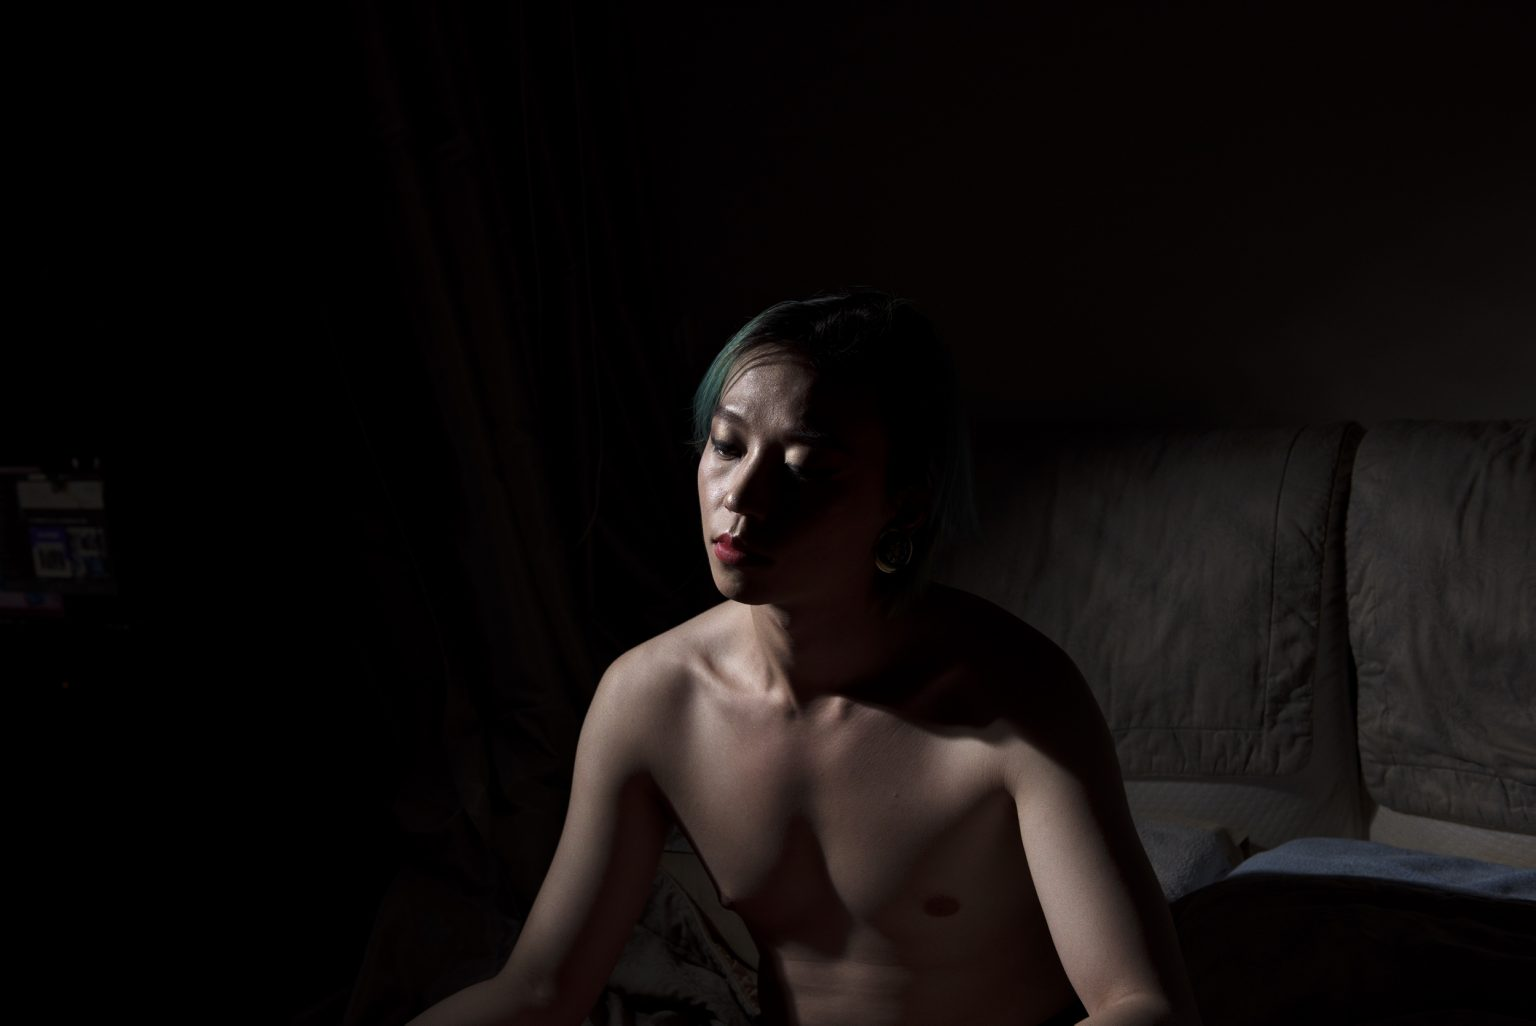 Fei Fain (28) portrayed in his home. He is a professional Drag Queen and a Airbnb host. His parents know about his sexuality but they talk about it. Taipei. Taiwan, 2019